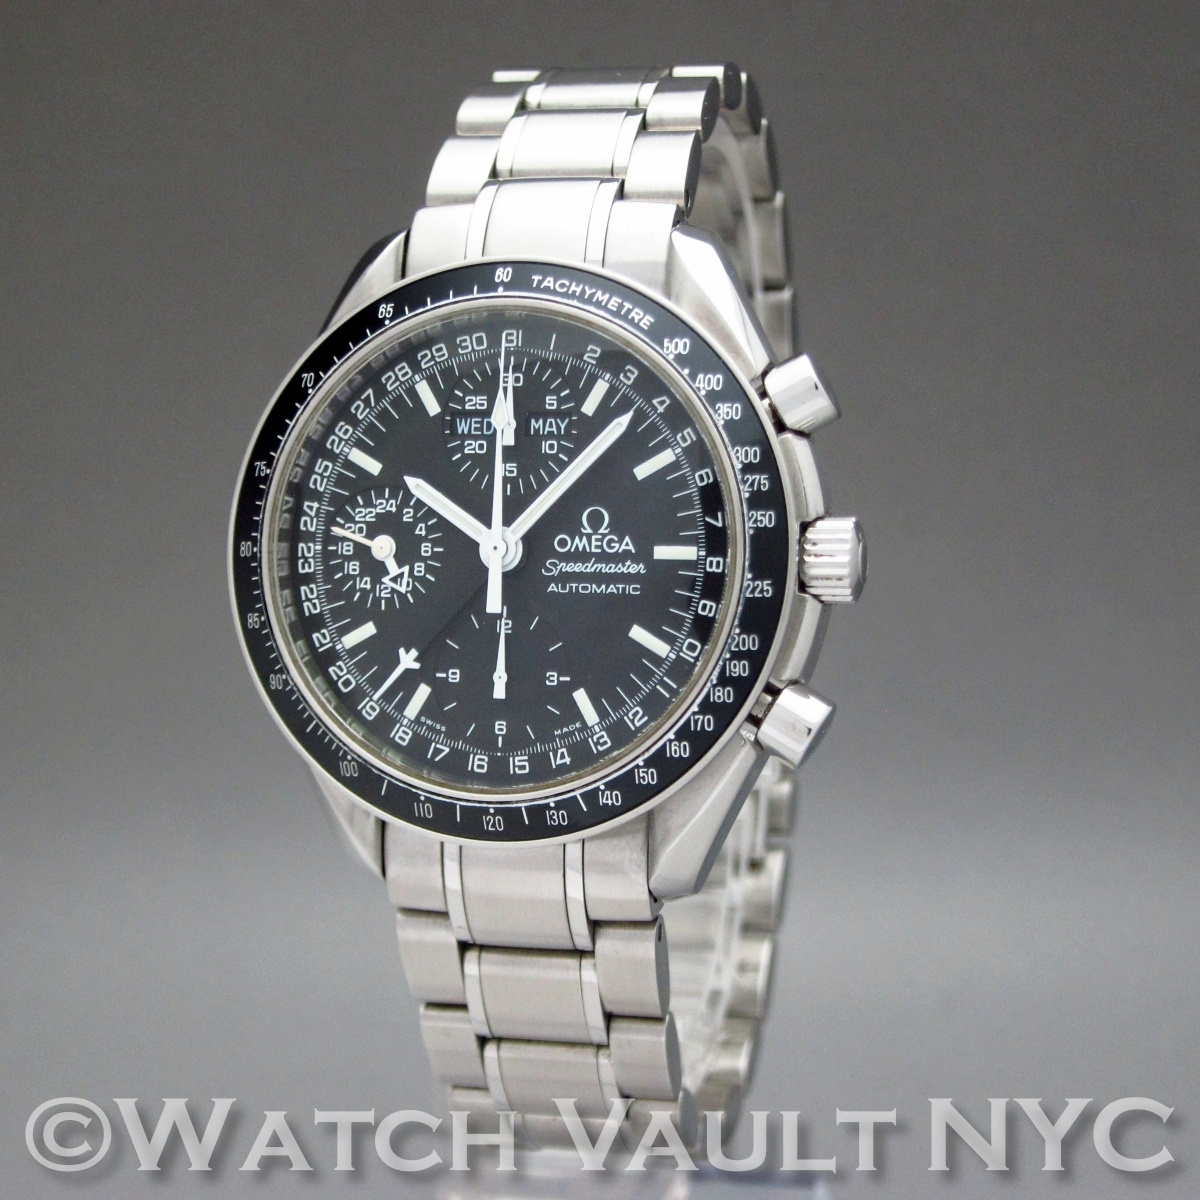 omega speedmaster day date 3520 50 Find great deals for omega speedmaster 35205000 wrist watch item 1 omega speedmaster day-date 35205000 steel automatic men's watch - omega speedmaster day.